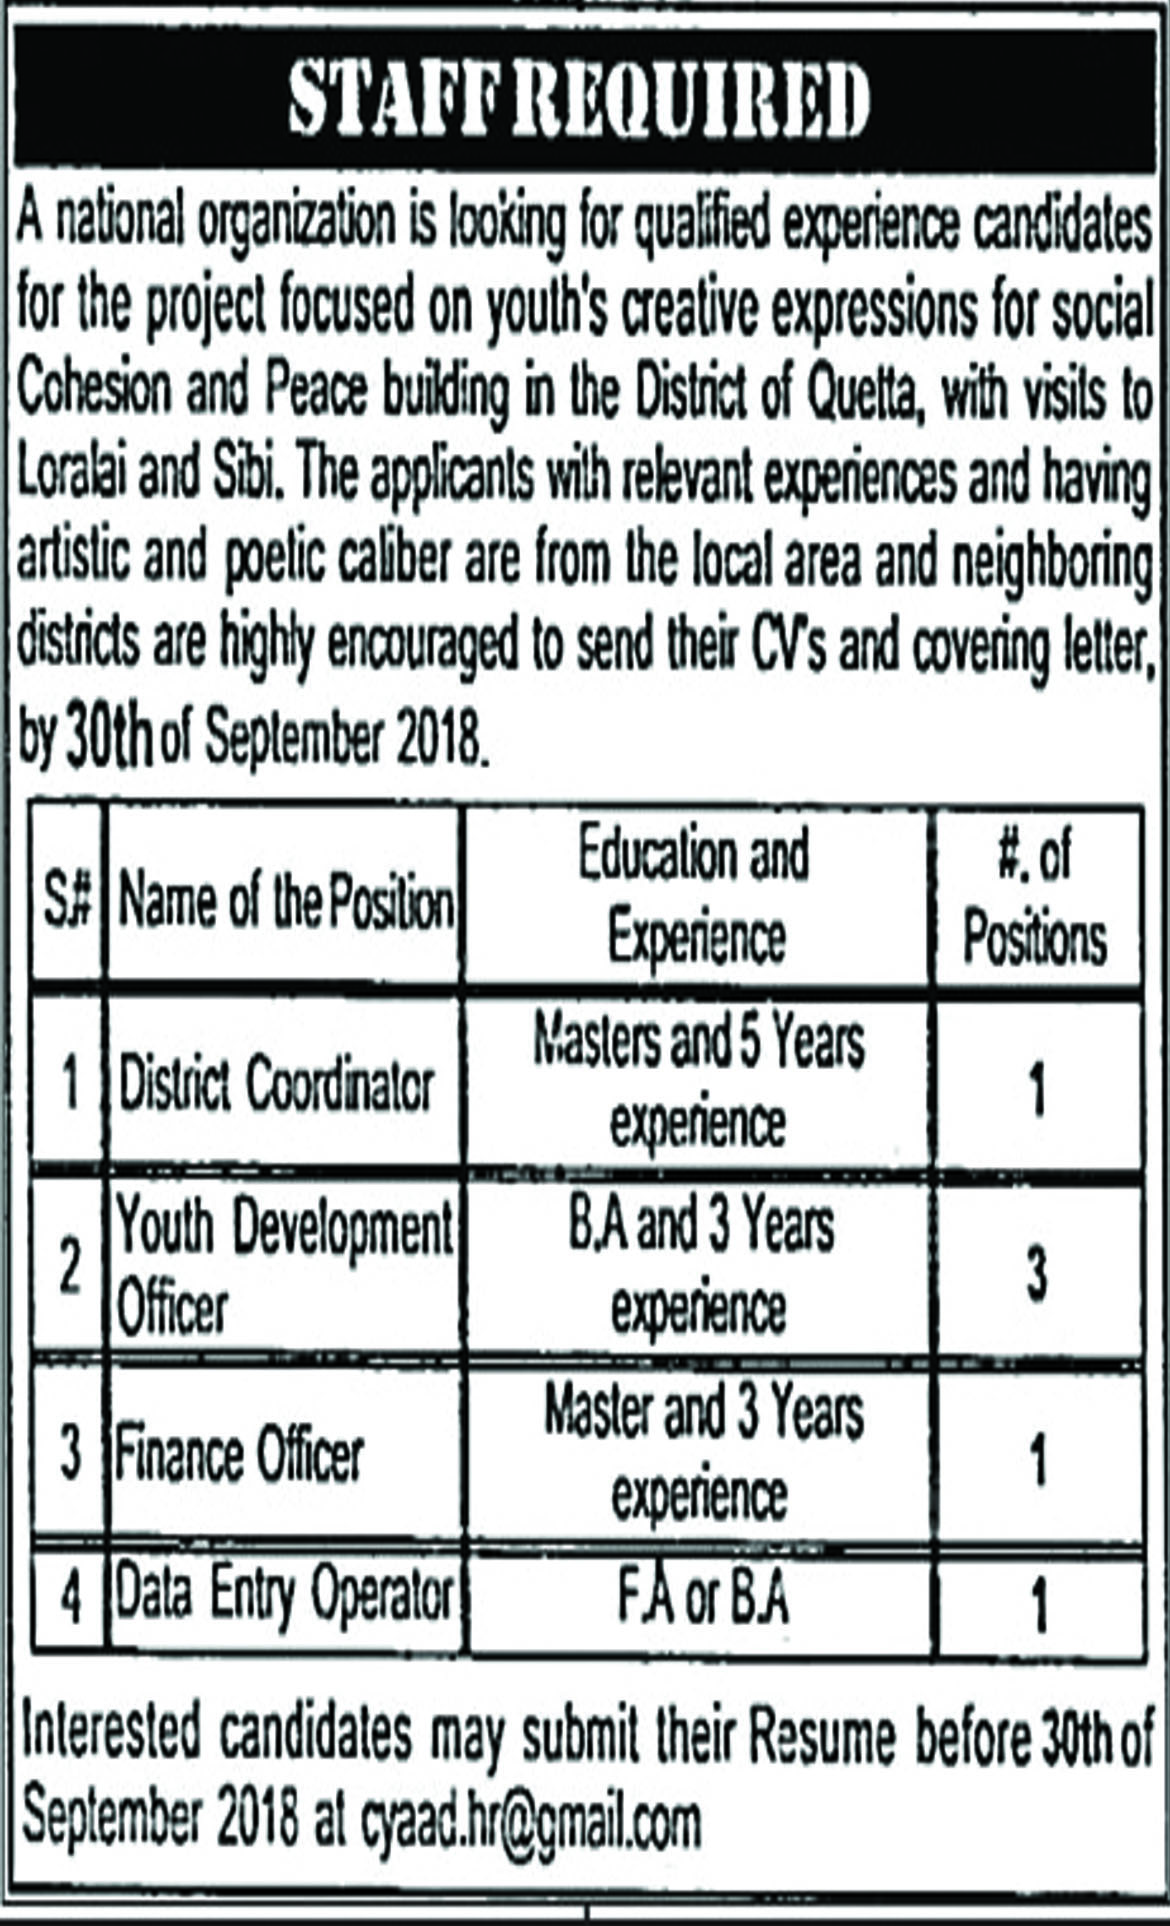 Jobs In District Coordinator, Youth Development Officer, Finance Officer, Data Entry Operator 27 Sep 2018